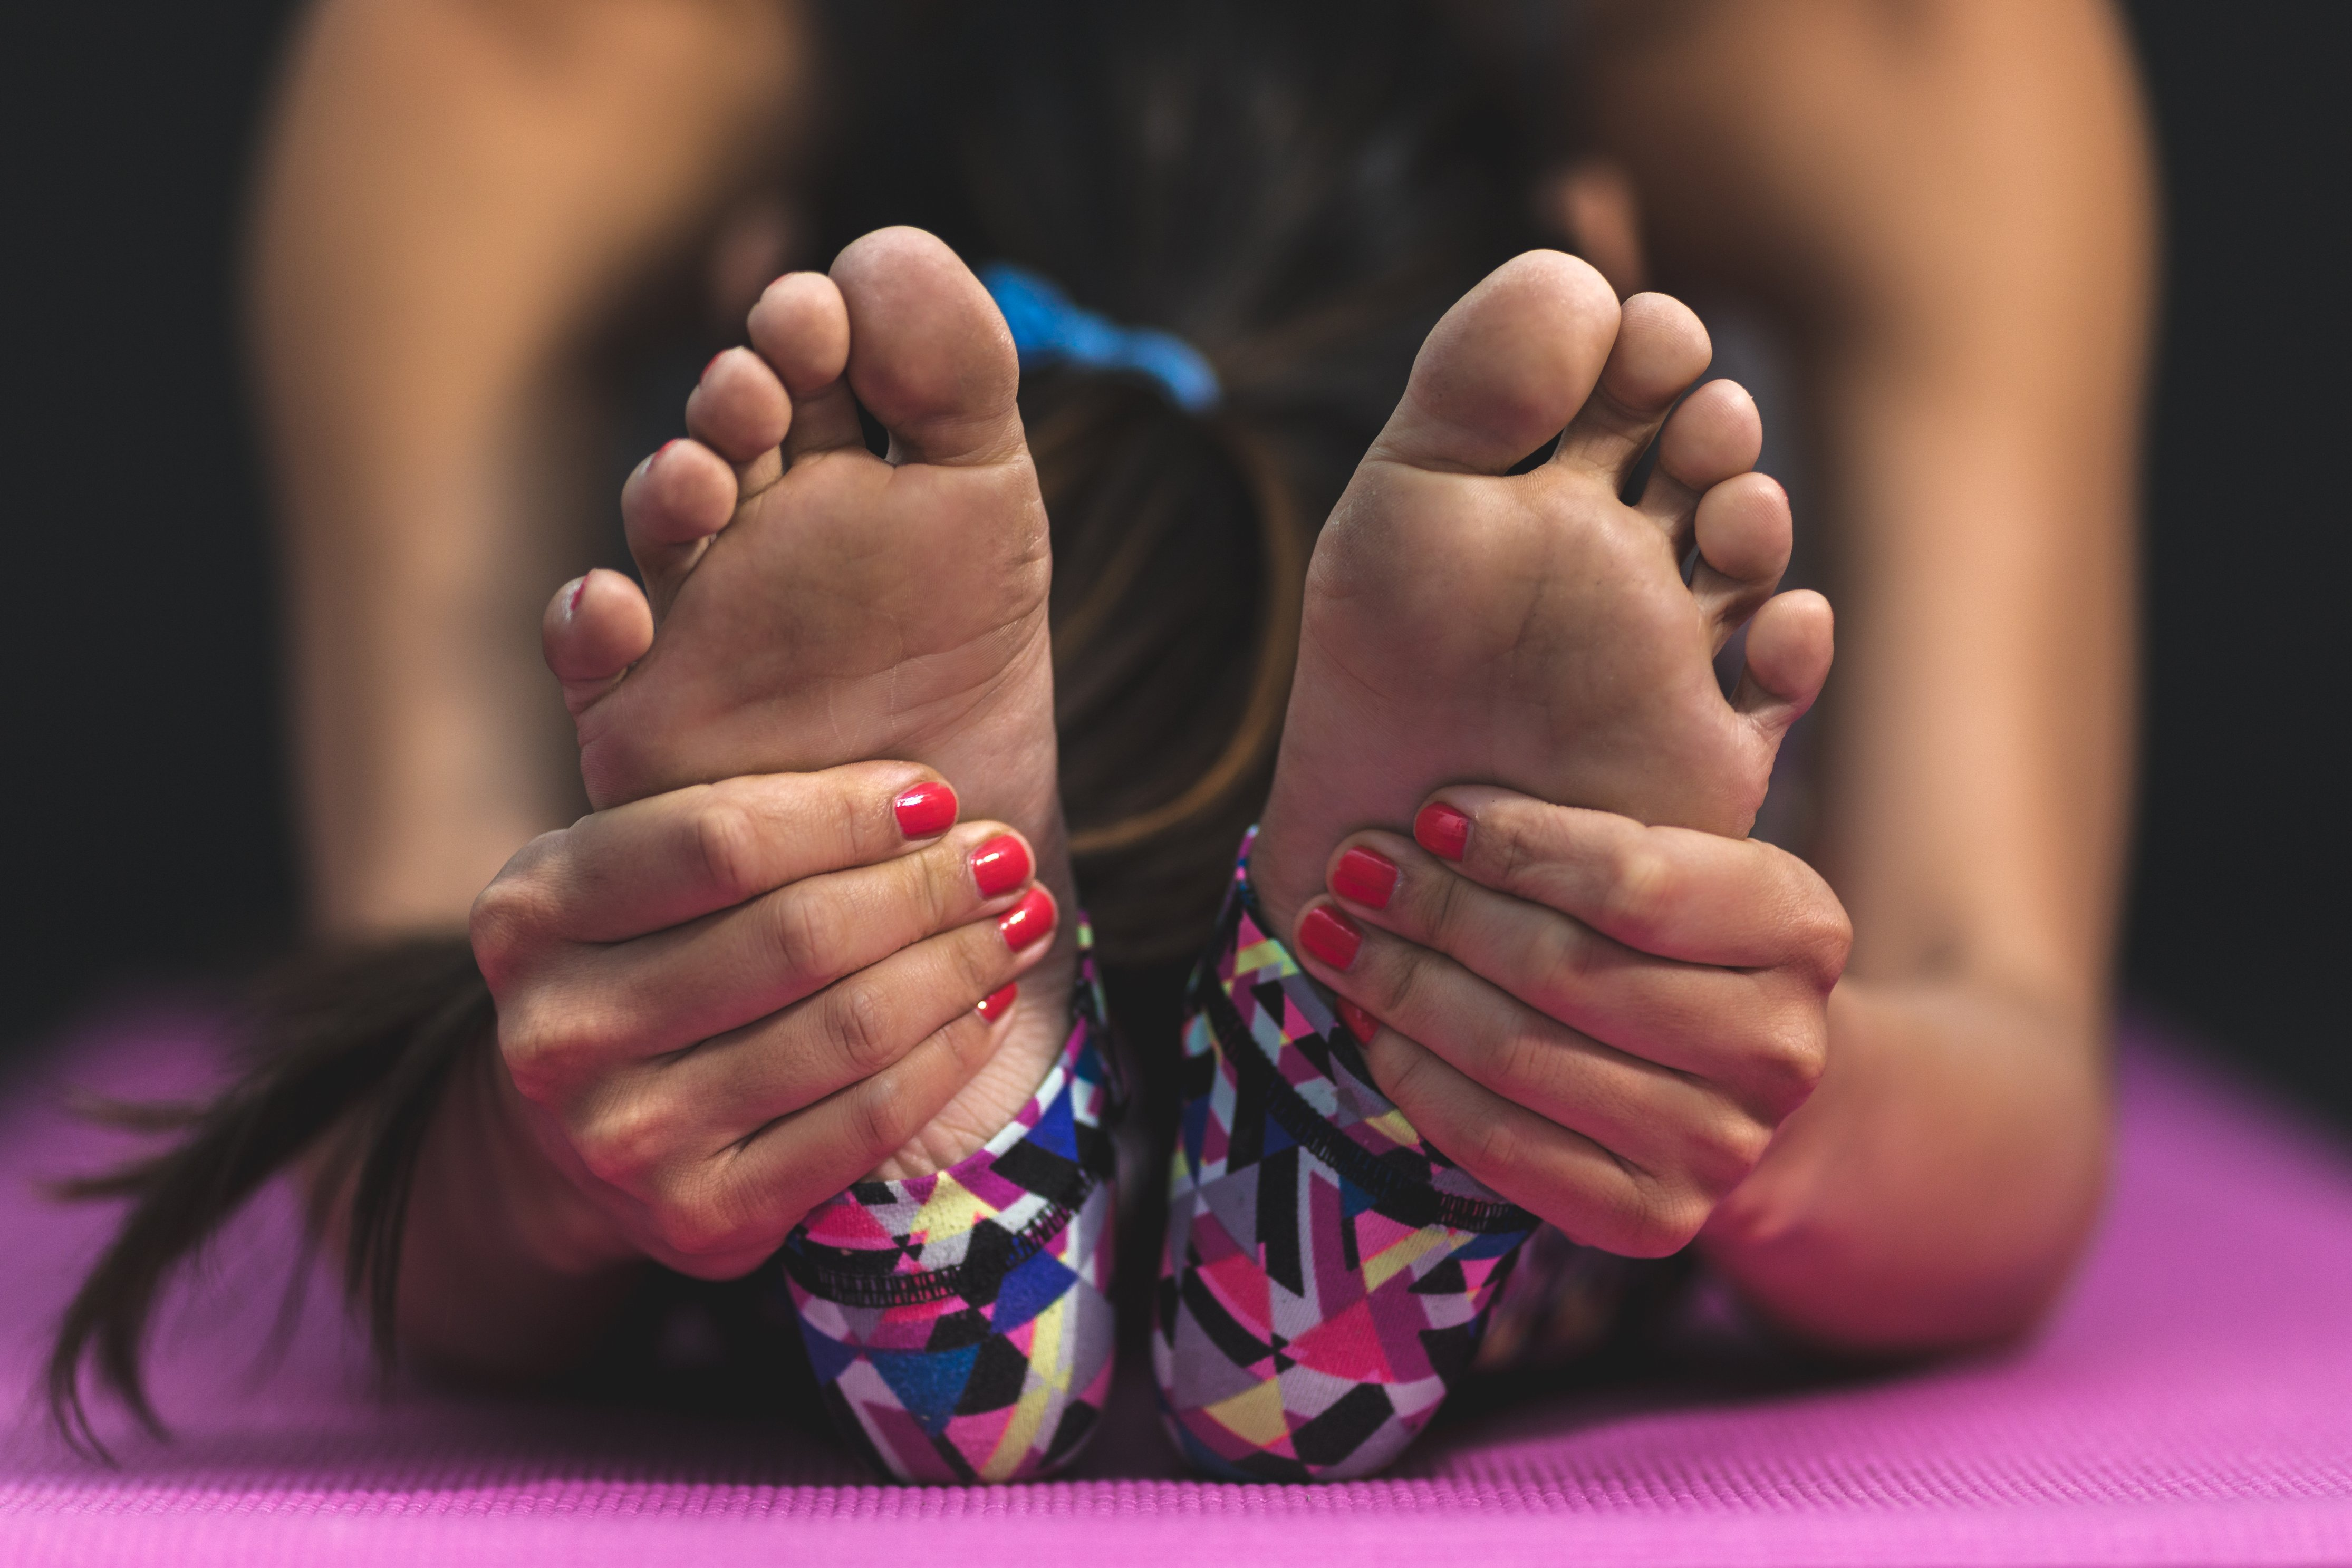 stretching-woman-hands-feet